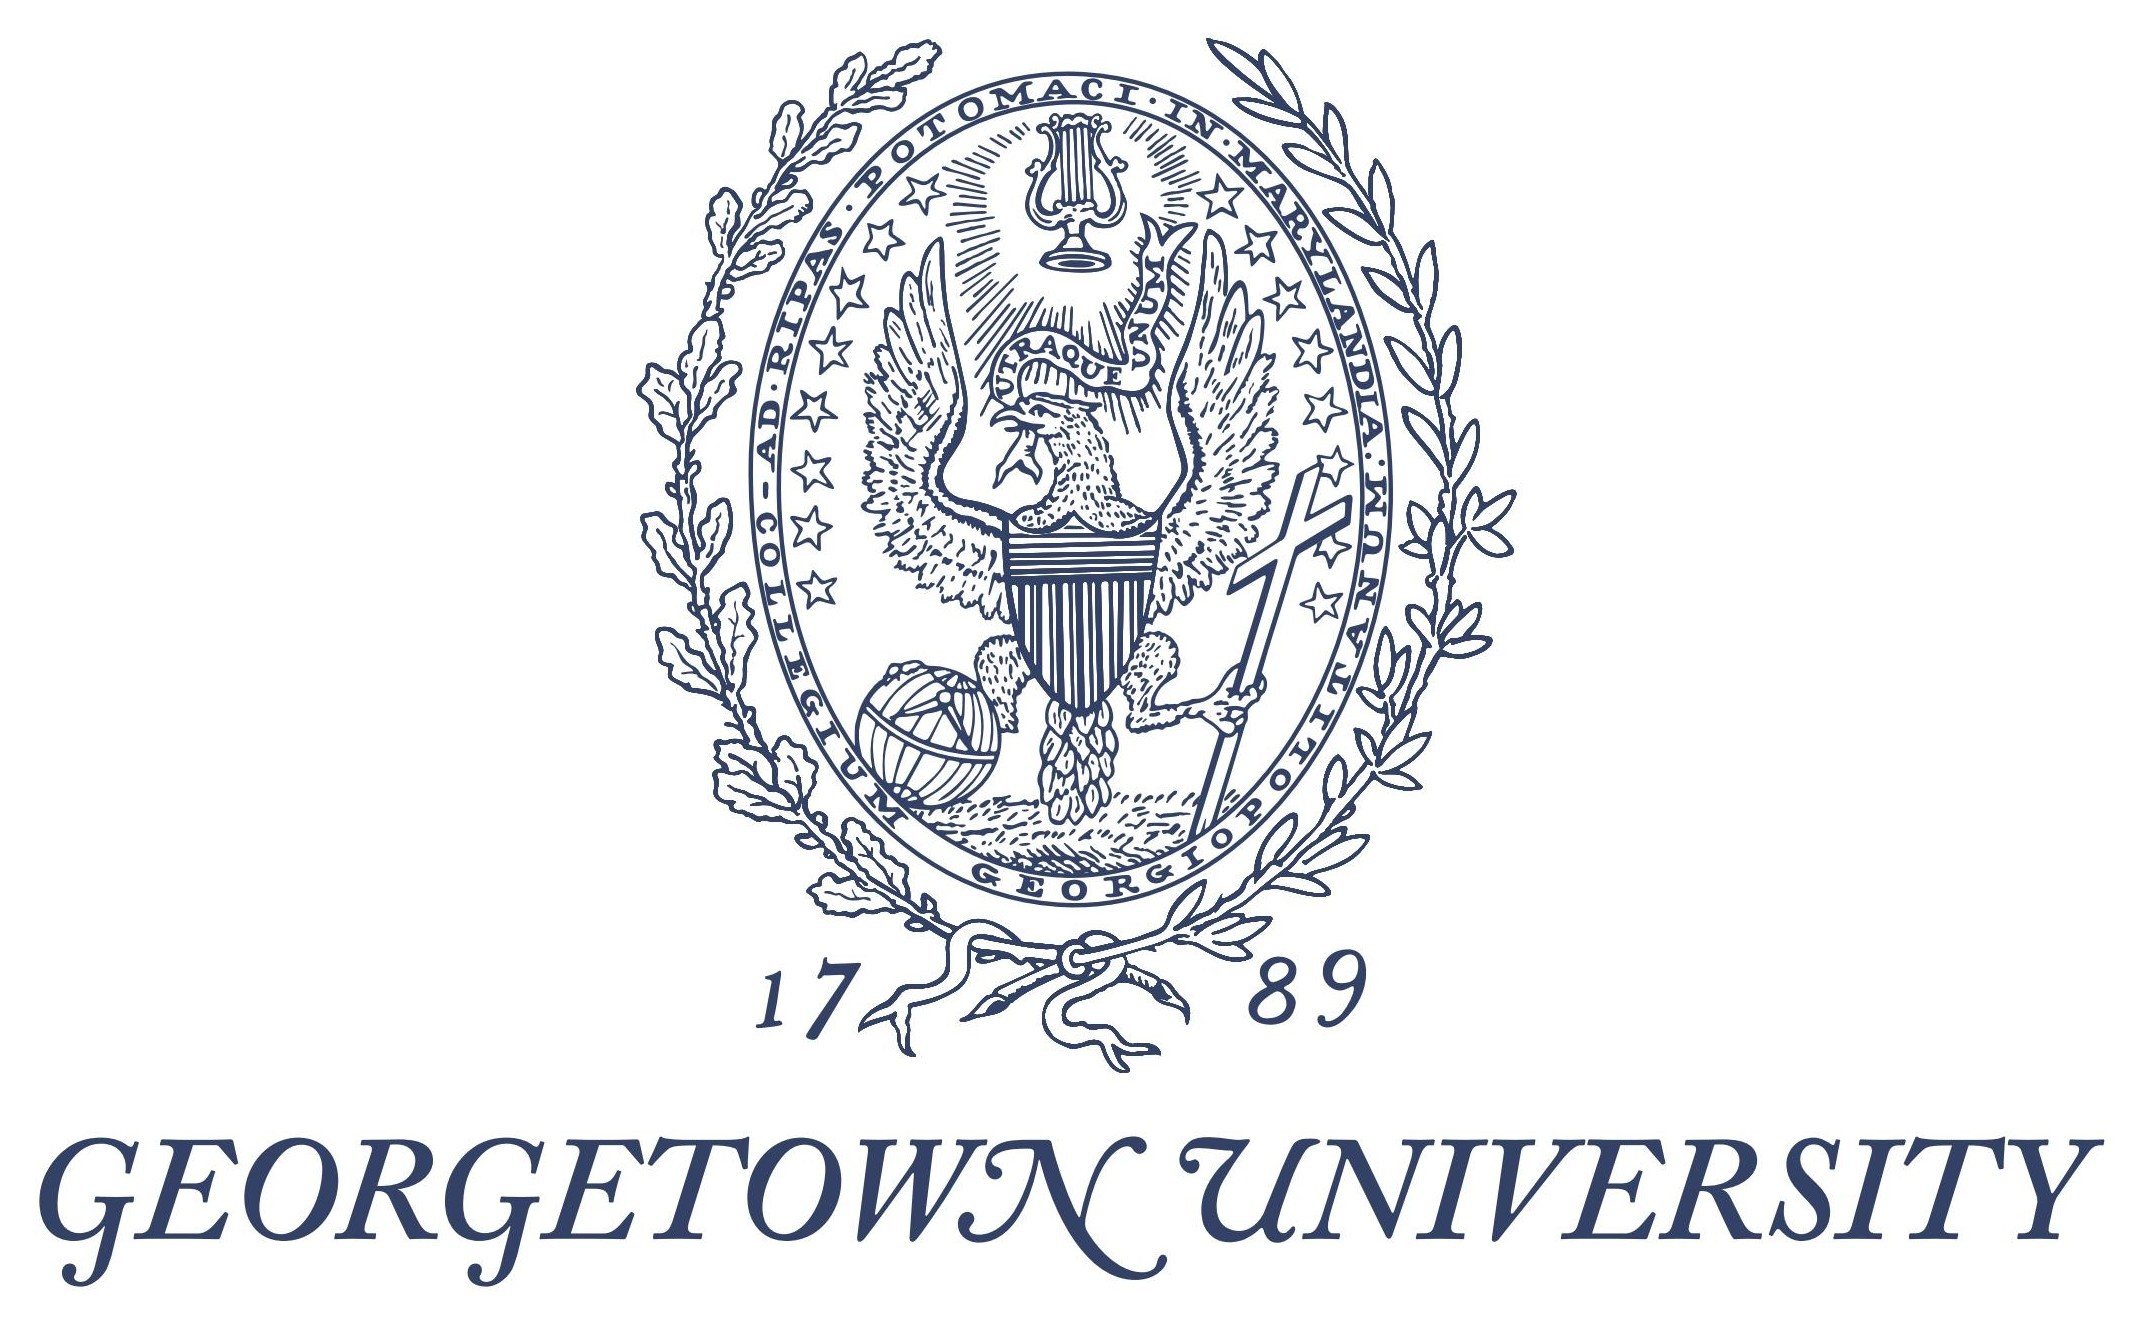 2137x1337 Georgetown University, Georgetown Center for Business and Public Policy:  Administrative Coordinator